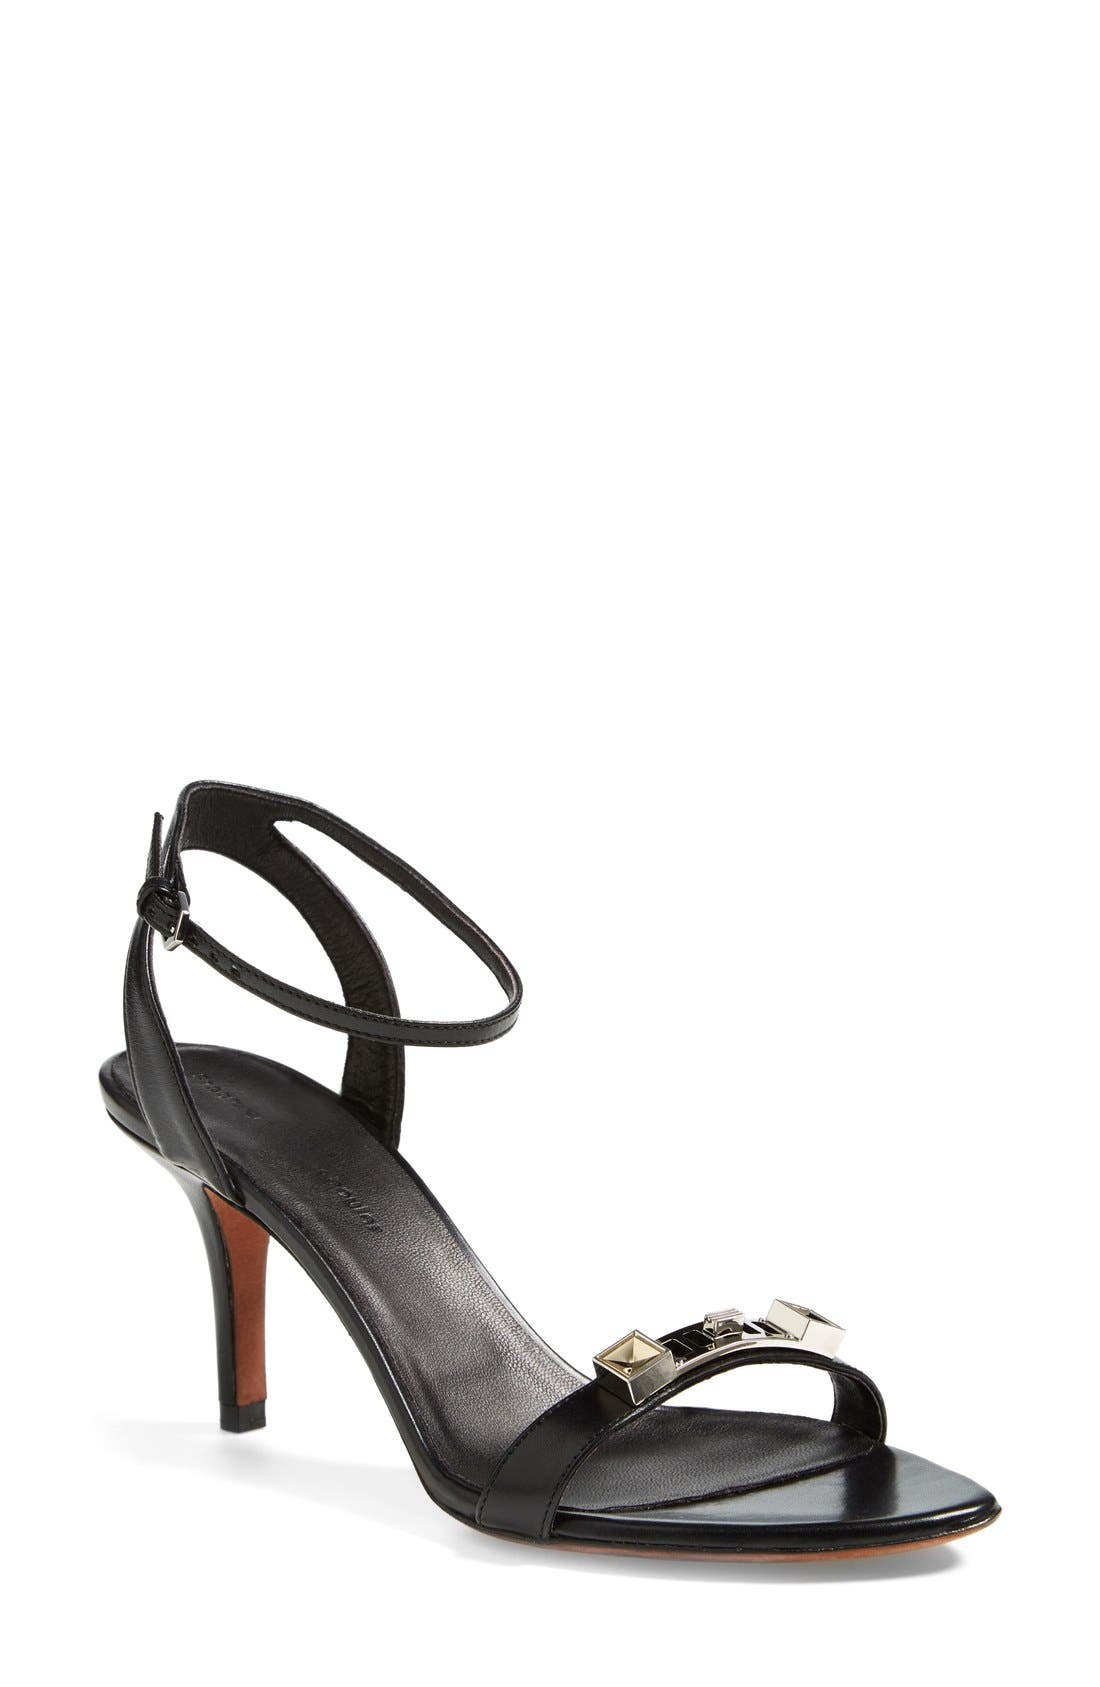 Alternate Image 1 Selected - Proenza Schouler Leather Ankle Strap Sandal